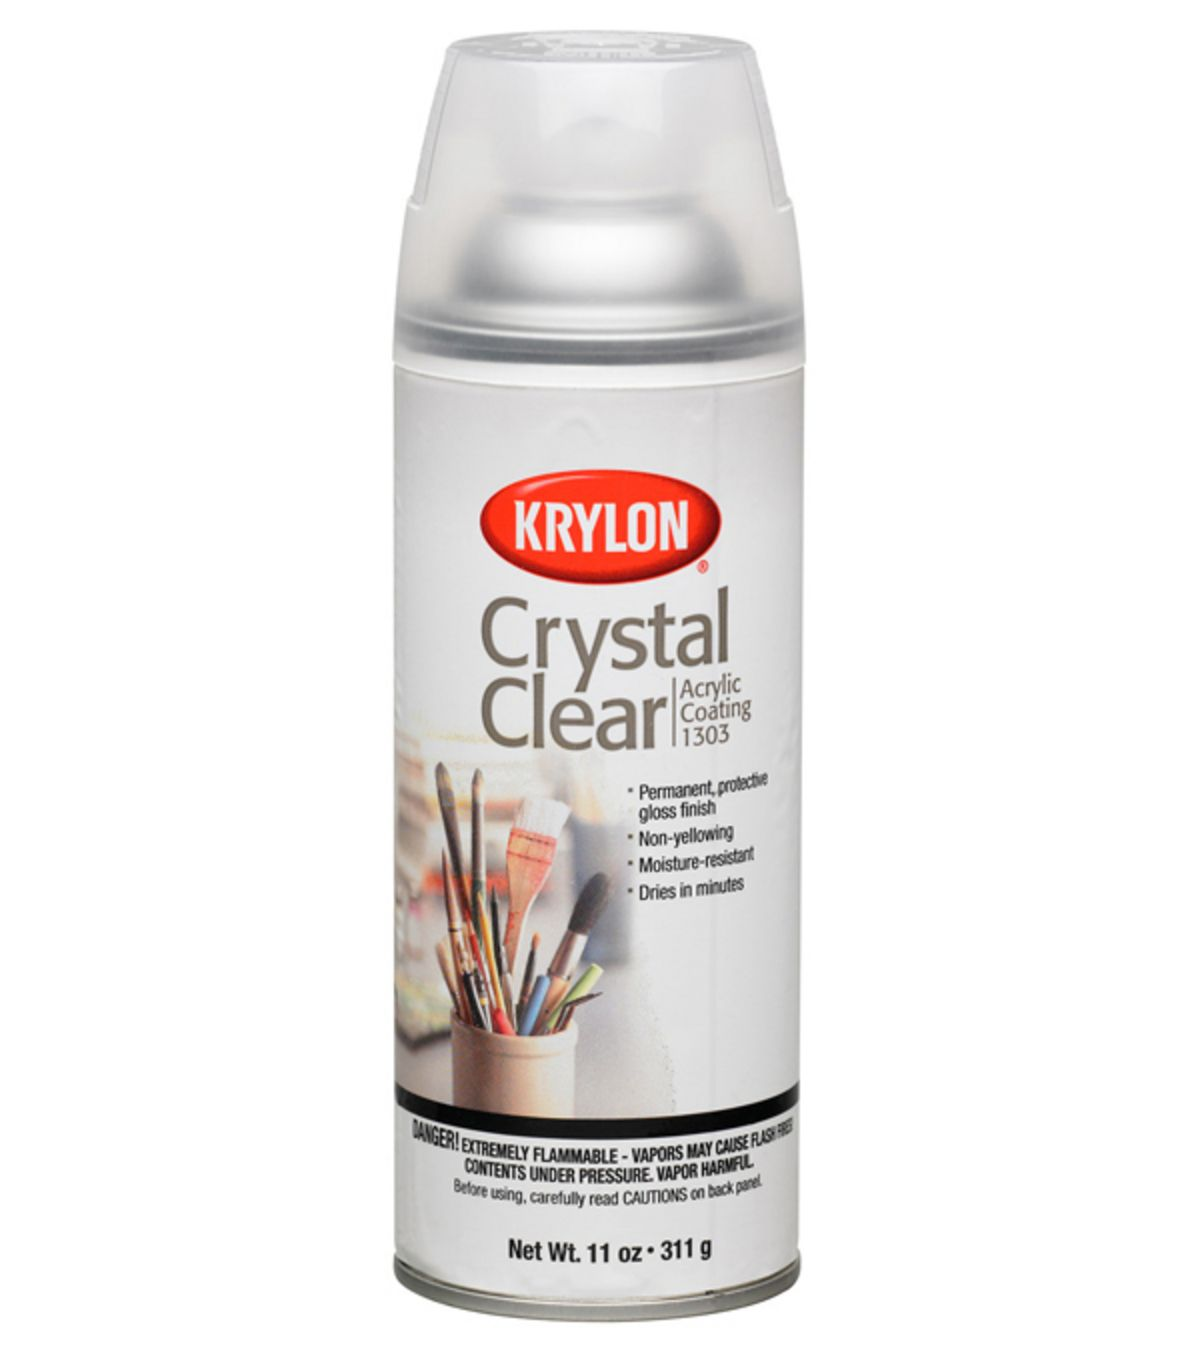 Krylon Crystal Clear Varnish Spray 11 Ozkrylon Crystal Clear Varnish Spray 11 Oz With Images Gloss Spray Paint Clear Acrylic Krylon